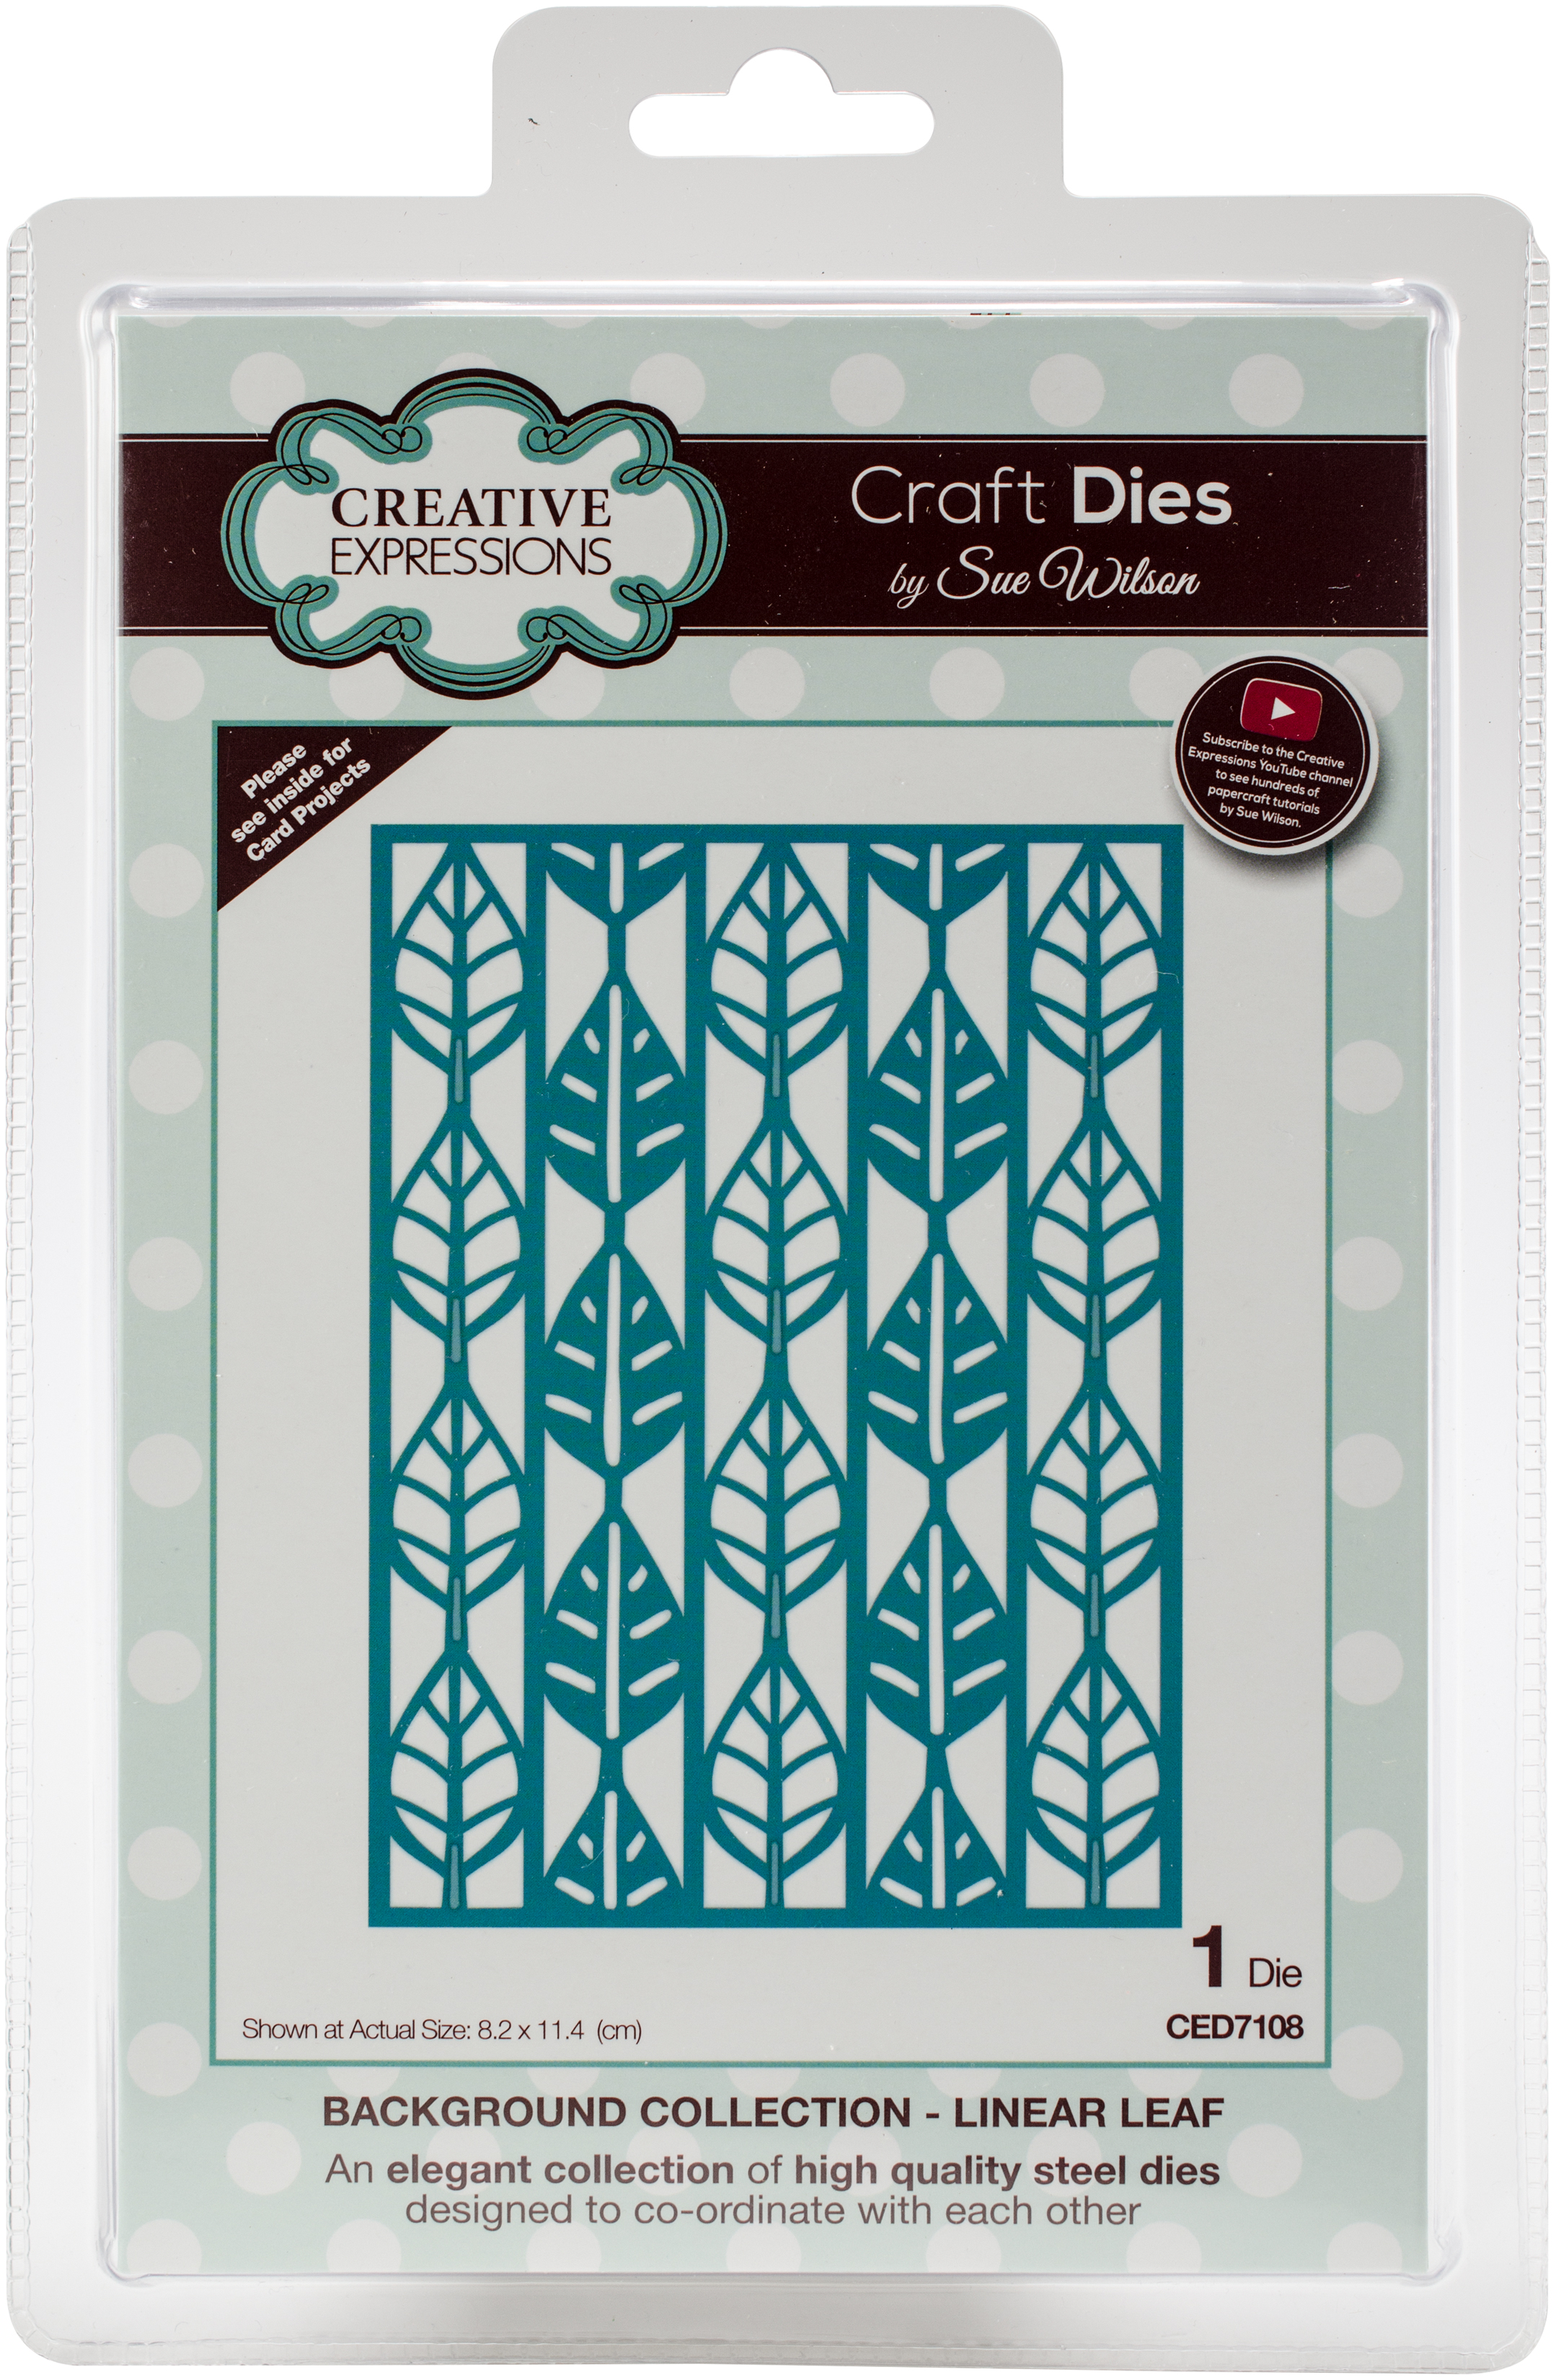 Creative Expressions Craft Dies By Sue Wilson-Linear Leaf Background